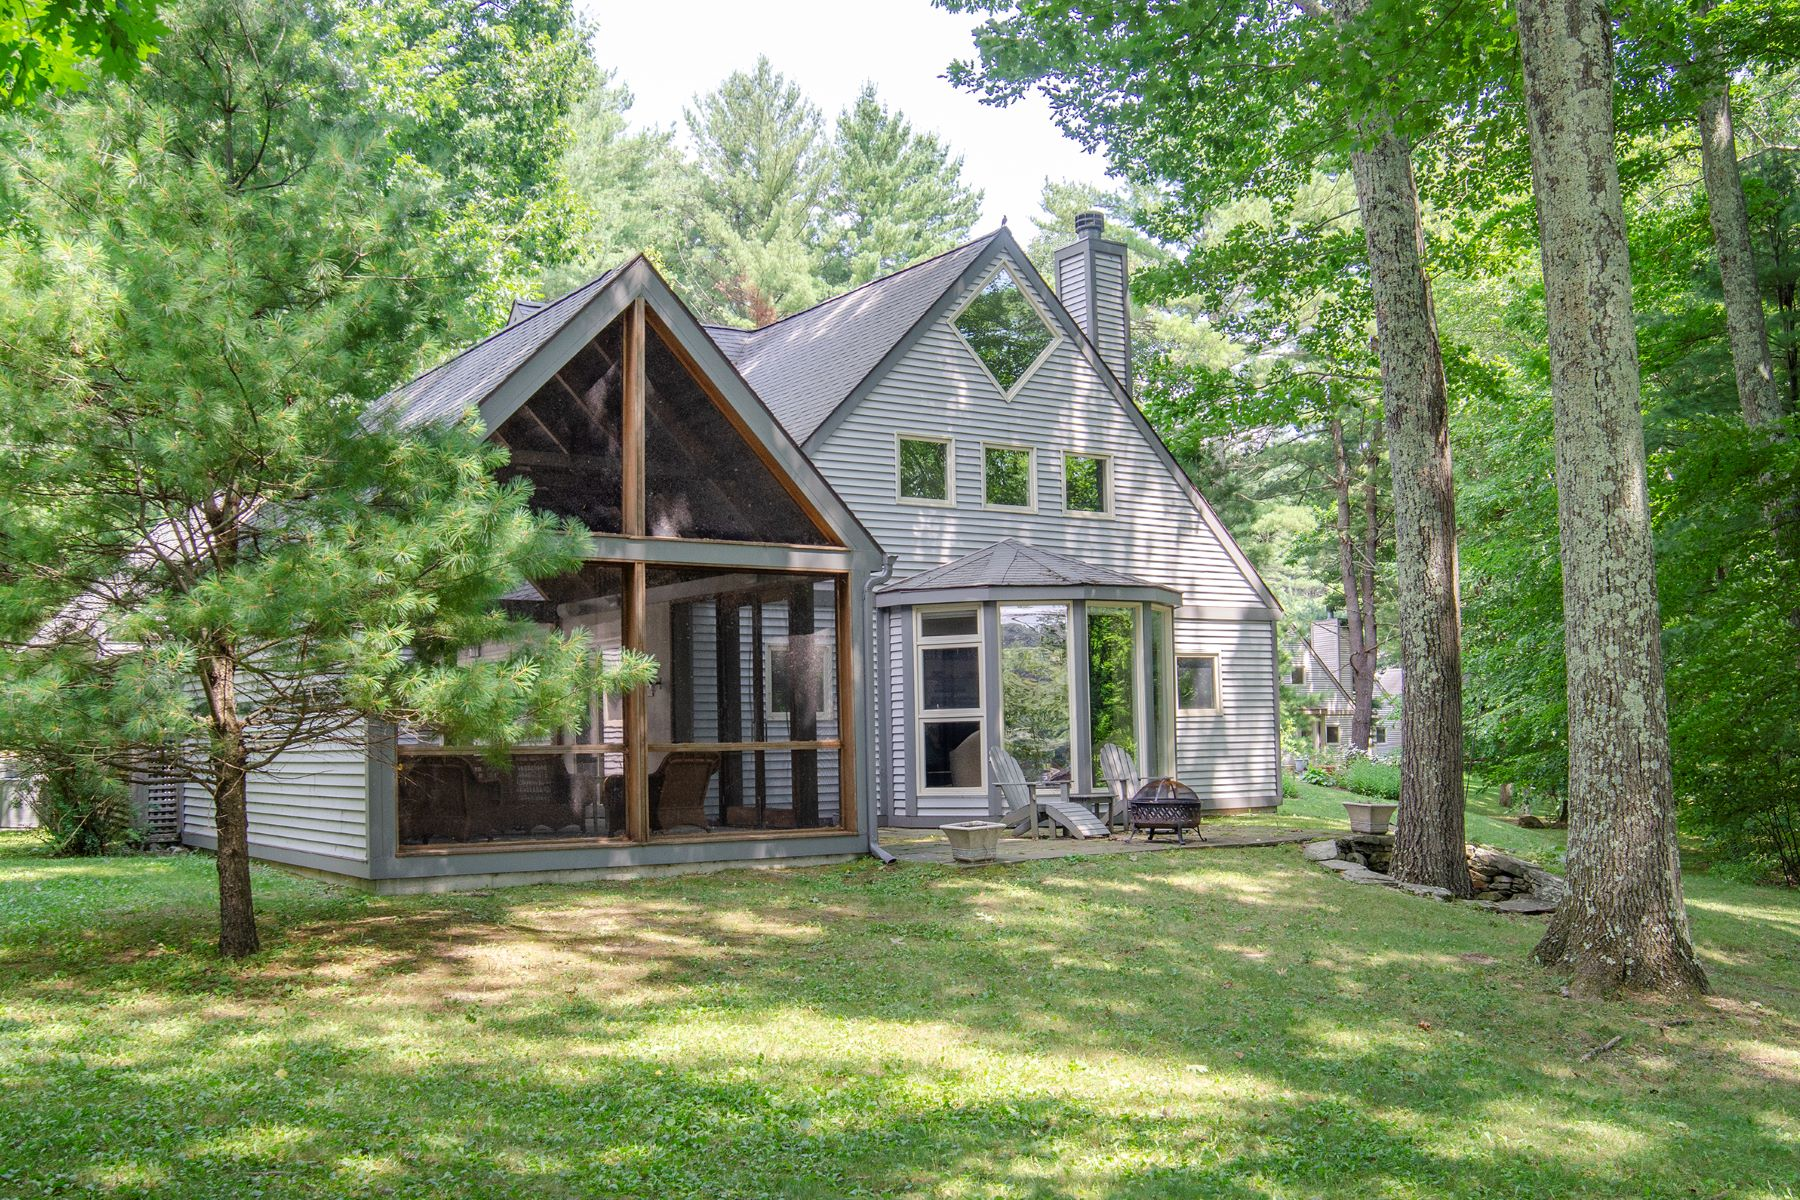 Single Family Homes for Sale at Idyllic Waterfront at Long Lake 134 Arcadia Drive Ancram, New York 12502 United States